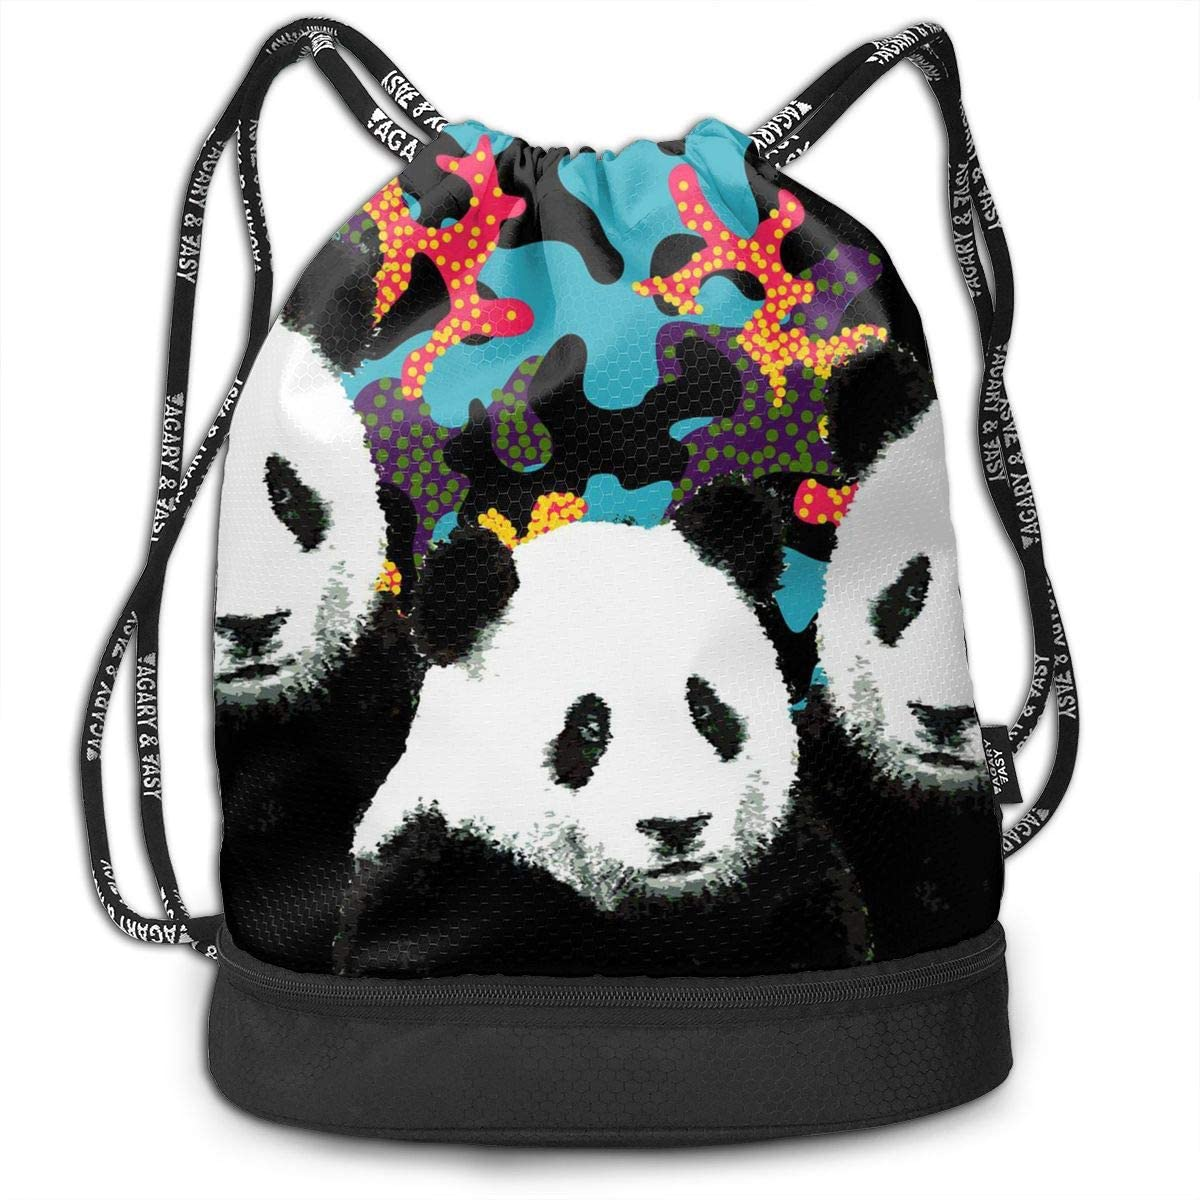 Bundle Backpacks Camo Panda Gym Sack Drawstring Bags Casual Daypack Yoga Bag School Training Pouch